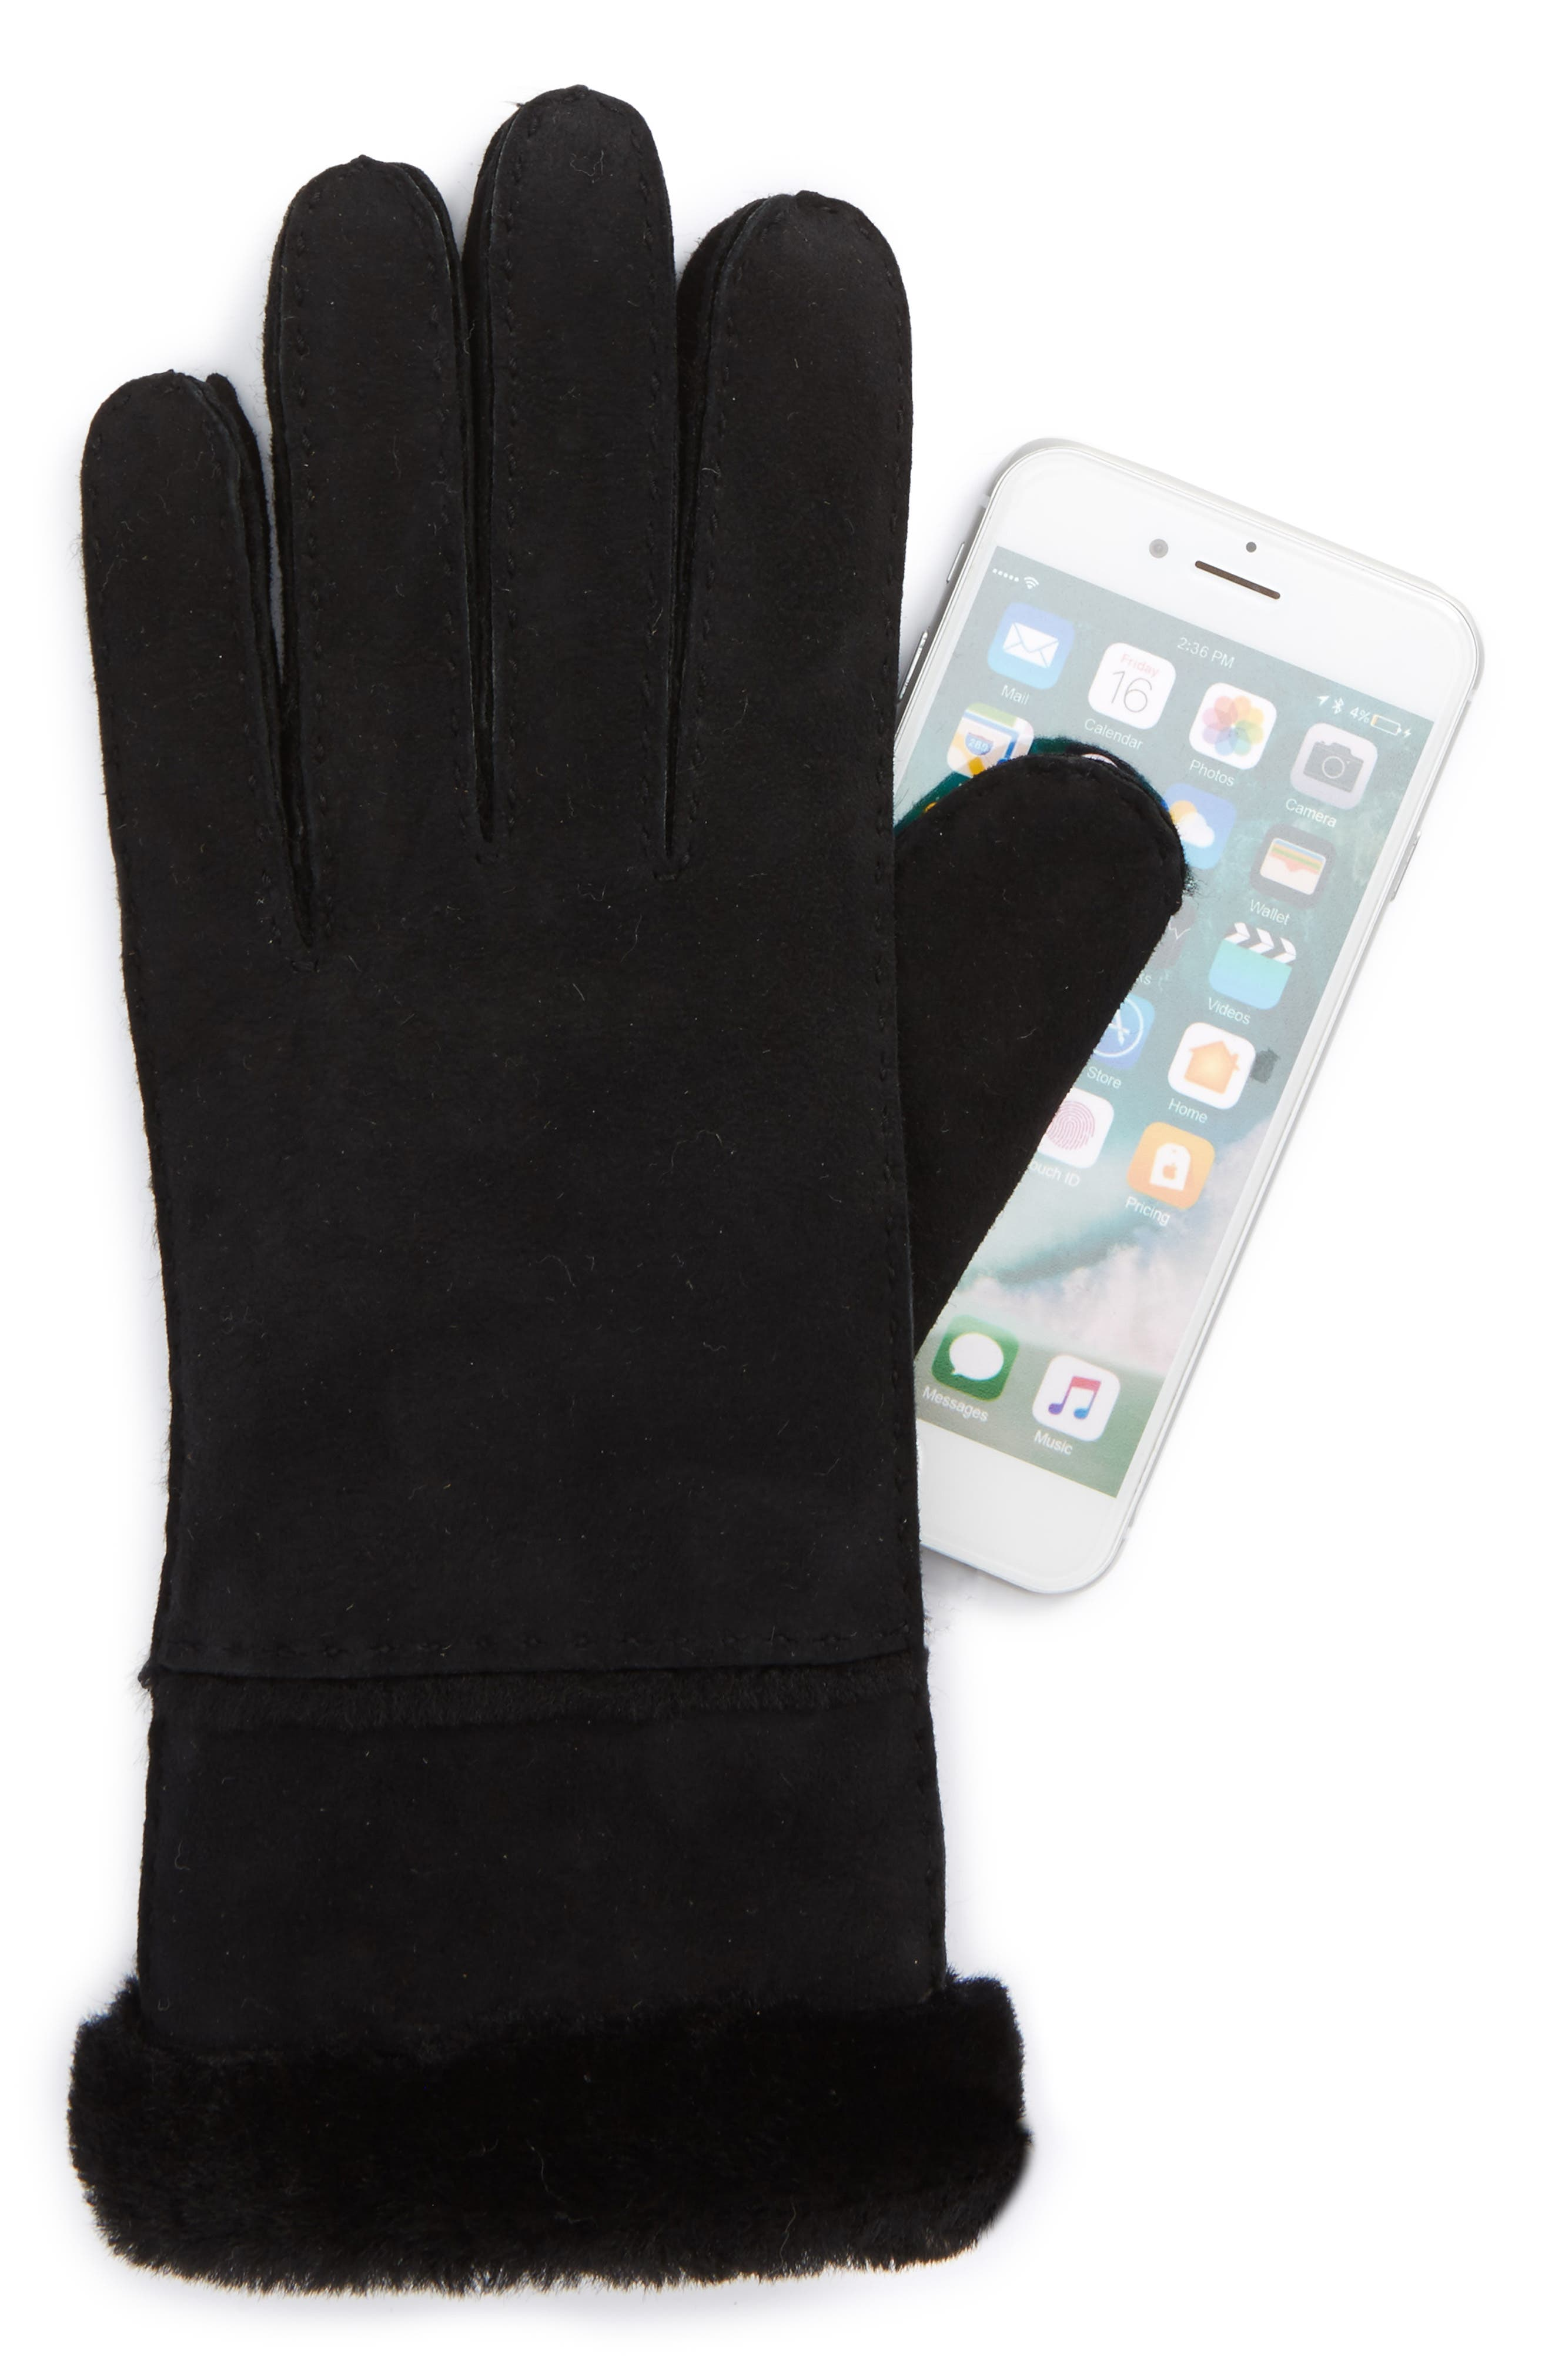 UGG<sup>®</sup> Slim Genuine Shearling Tech Gloves,                             Alternate thumbnail 2, color,                             001